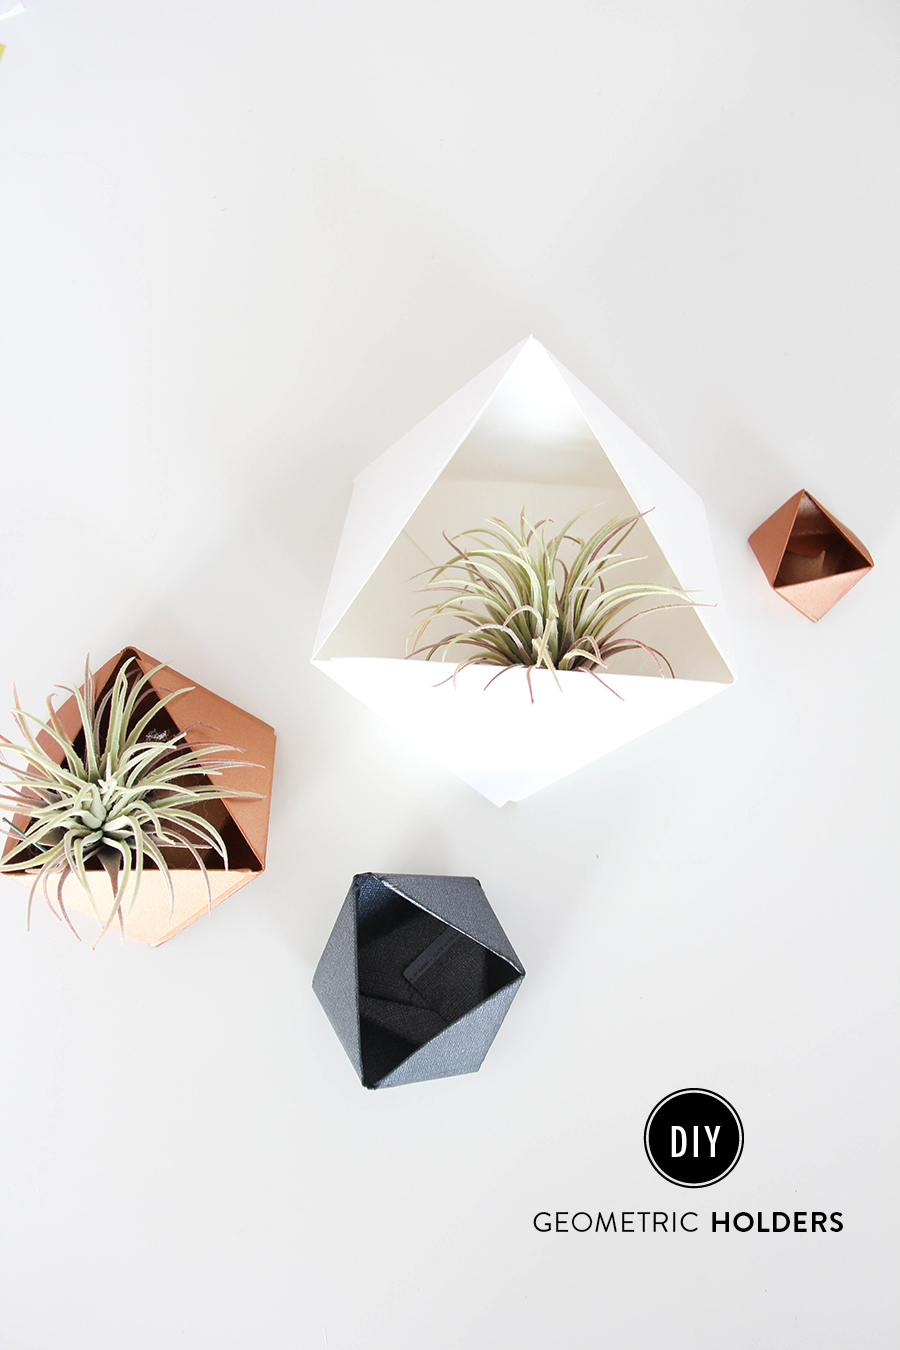 43 clever diy ideas for renters for Geometric wall art diy